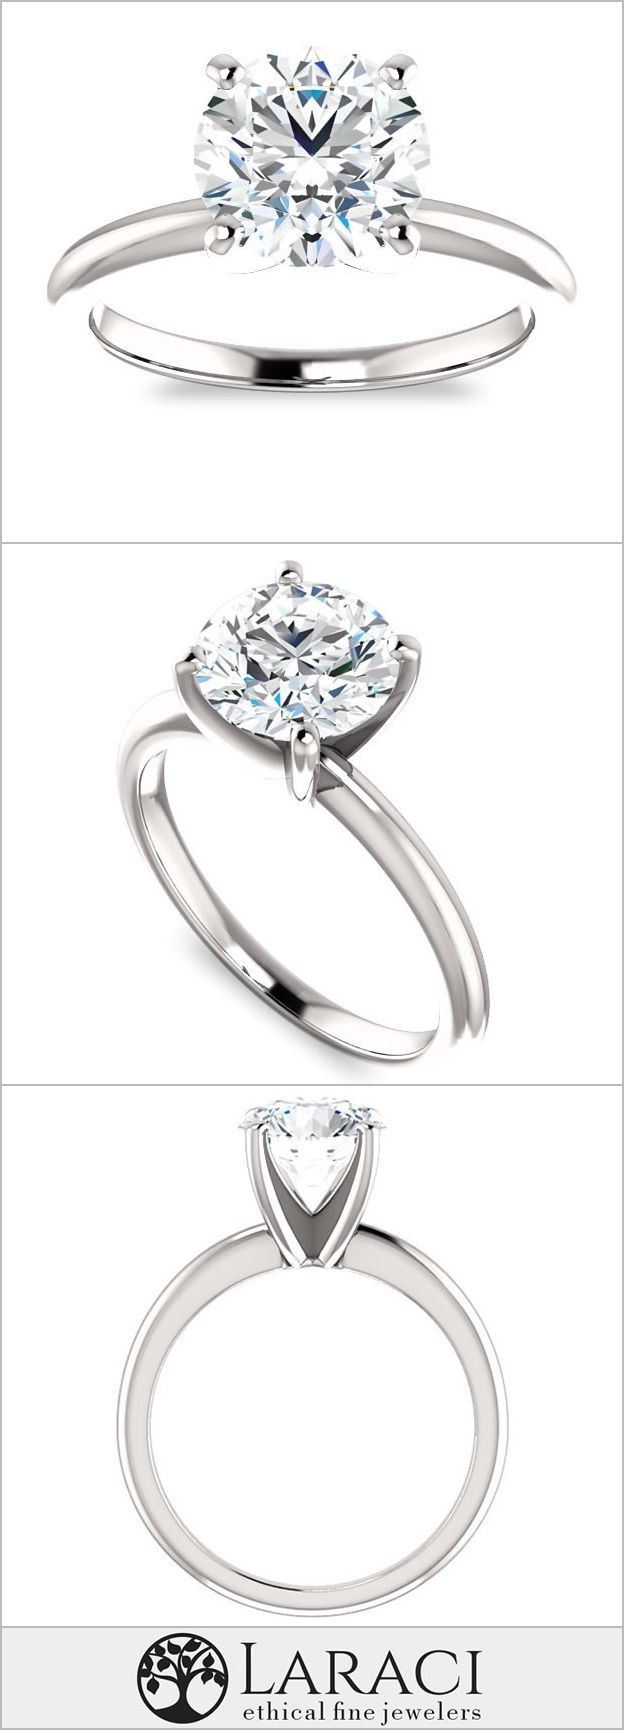 f3464b9f52 14K White Gold Solitaire Engagement Ring set with a 1.9ct (8mm) Round  Forever